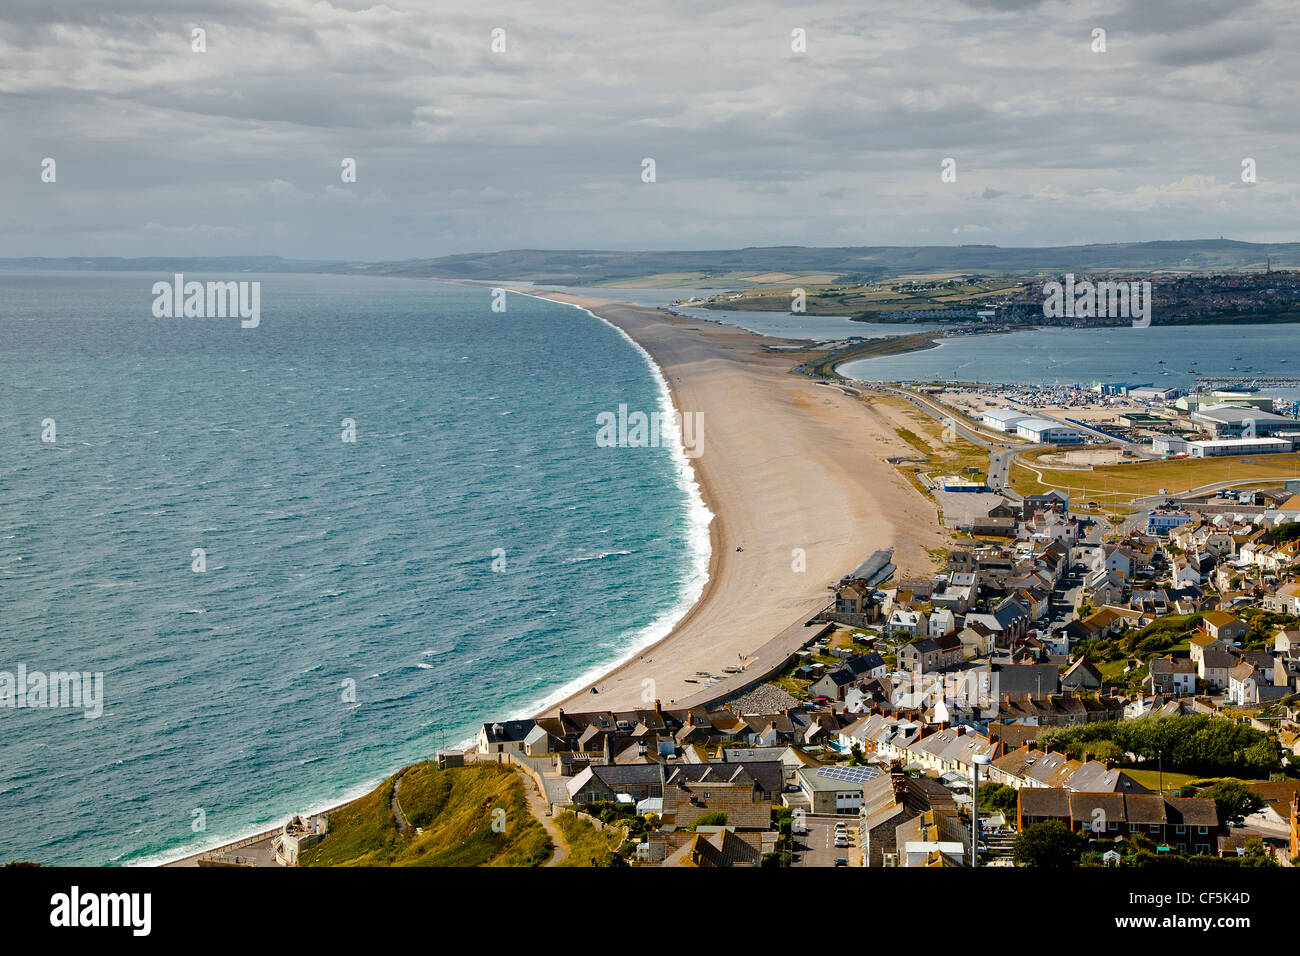 View over the village of Chesil along Chesil Beach, a 29 km long shingle beach on the Jurassic Coast of Dorset. - Stock Image